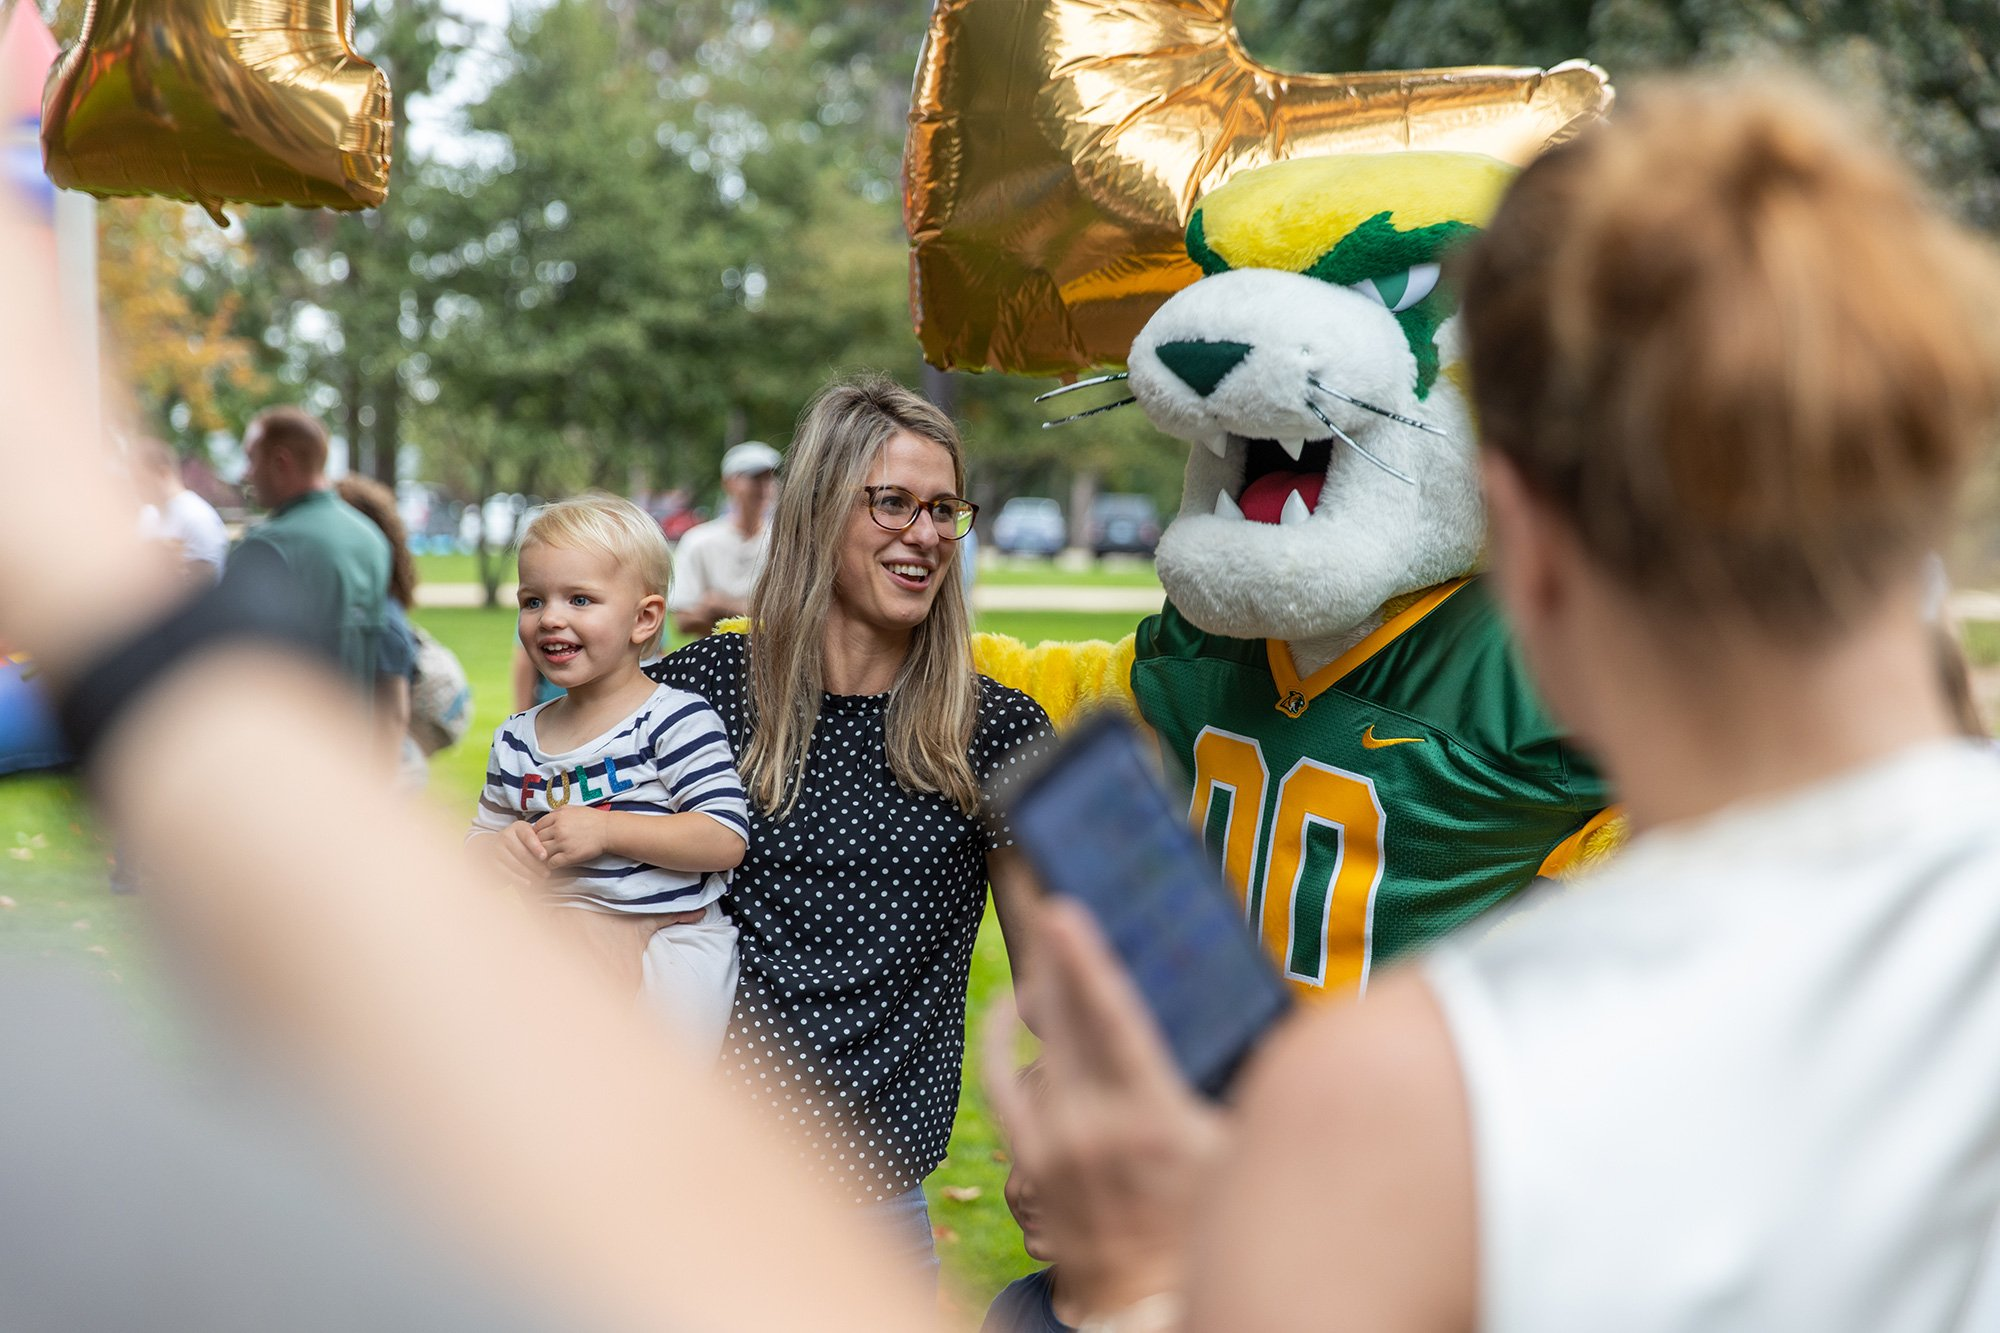 Mother and child with Wildcat Willy at a community event